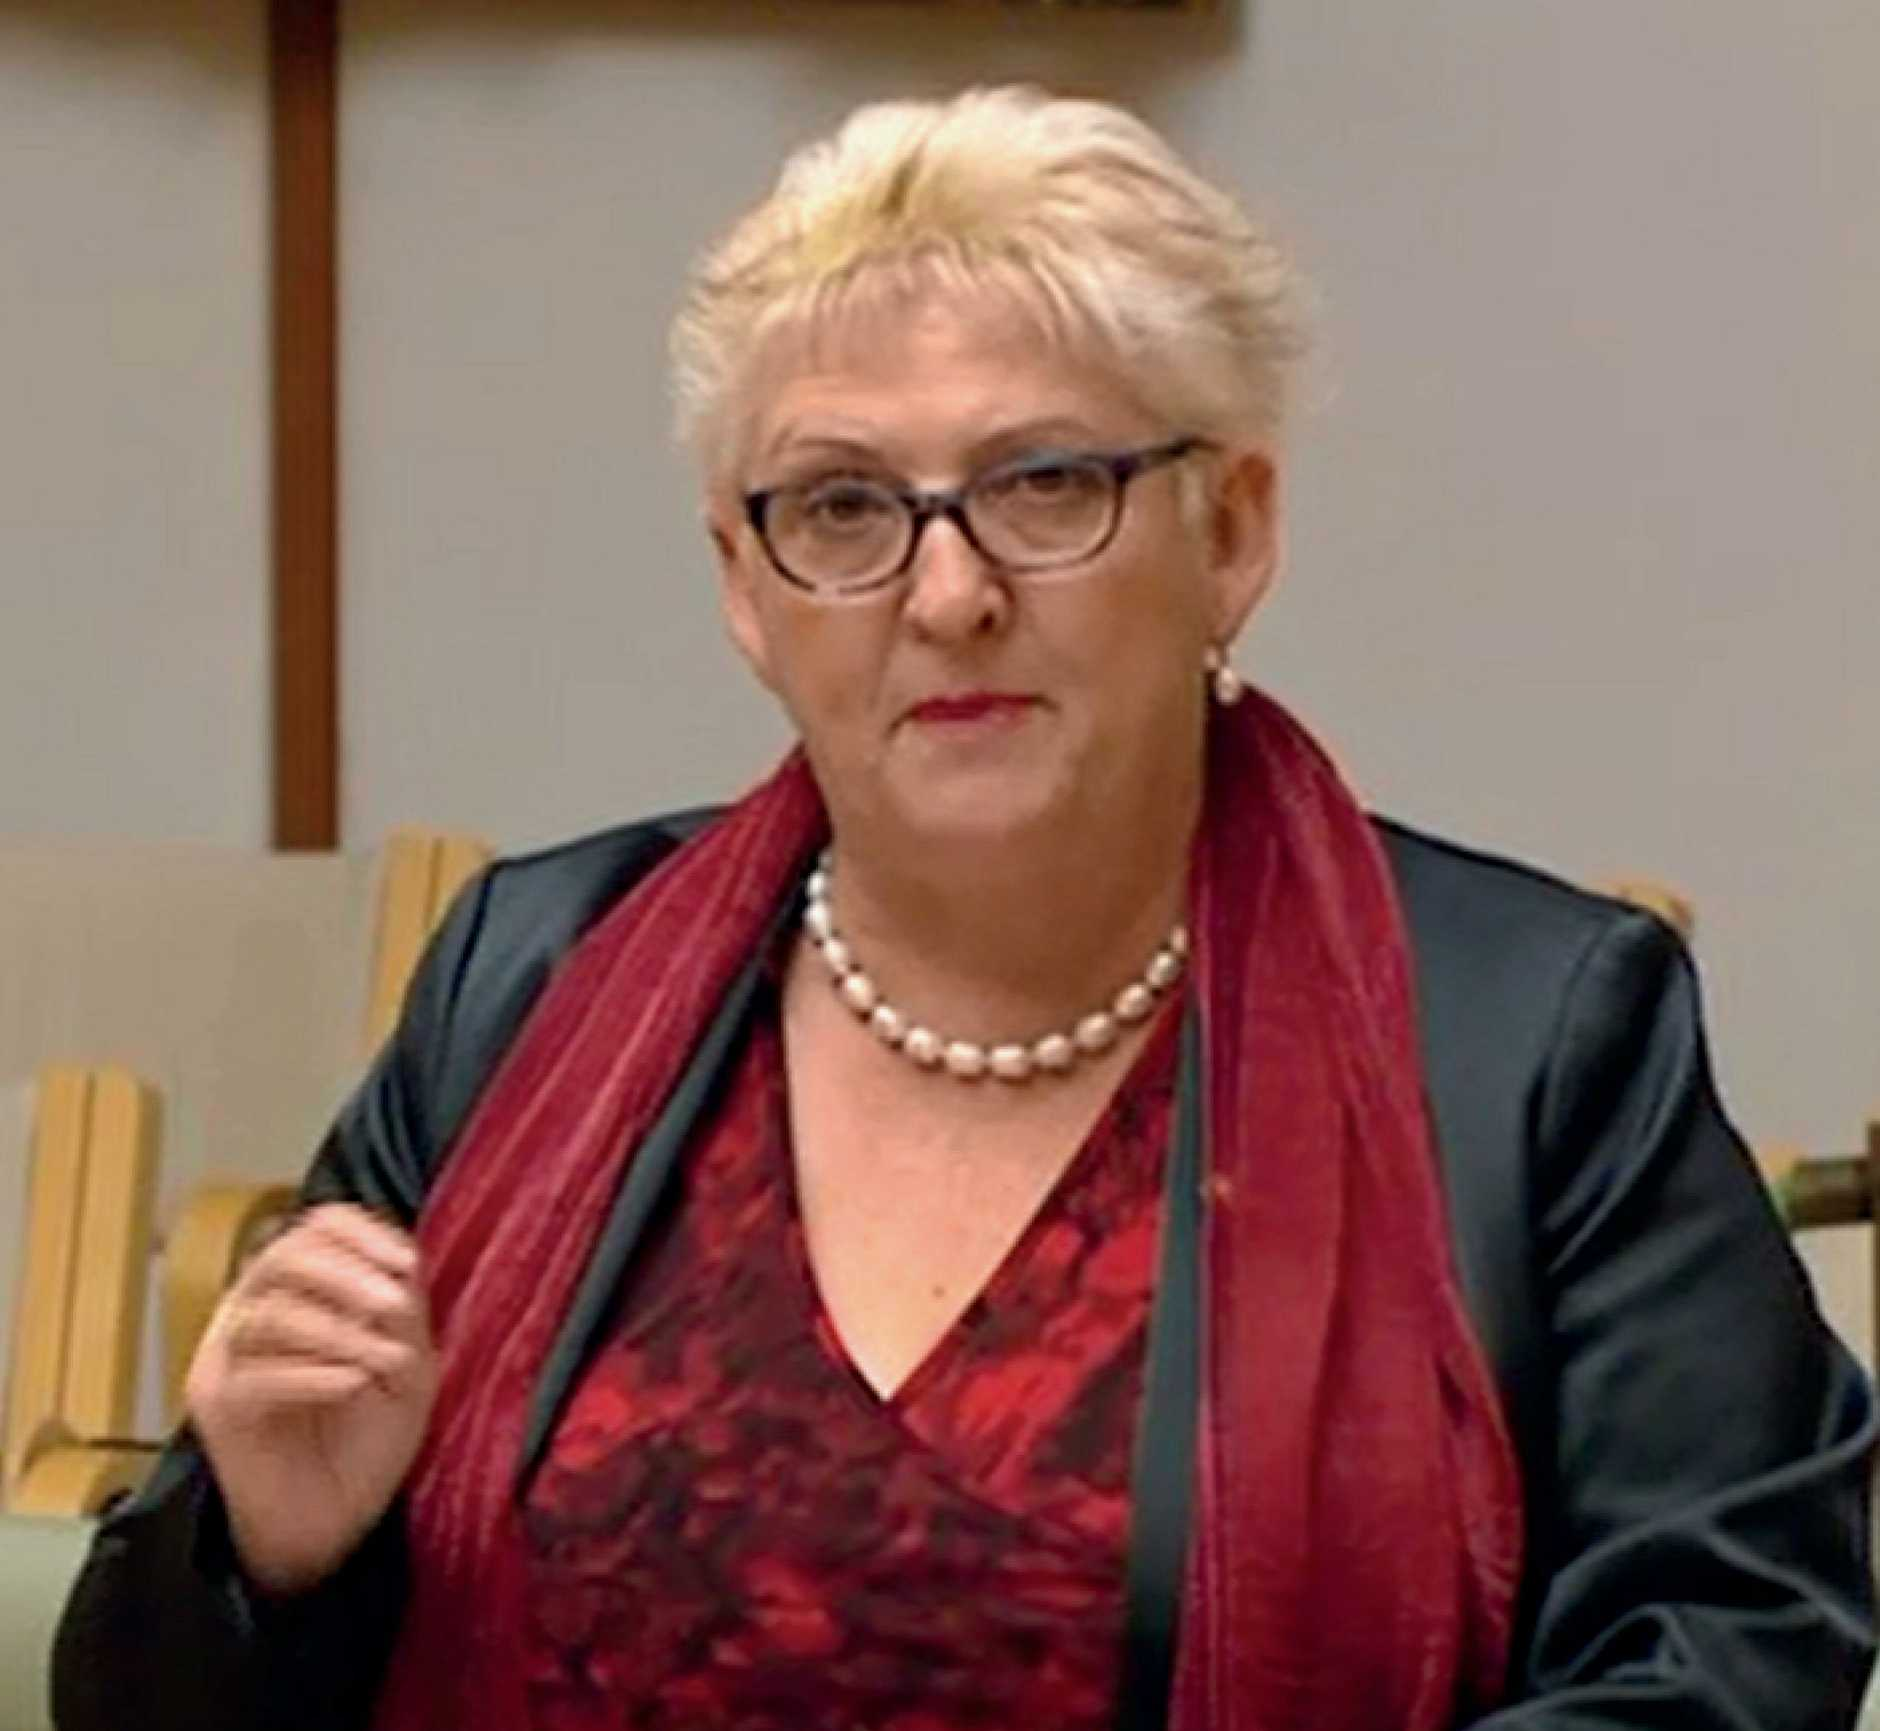 Capricornia MP Michelle Landry responds to NBN roll out criticism.